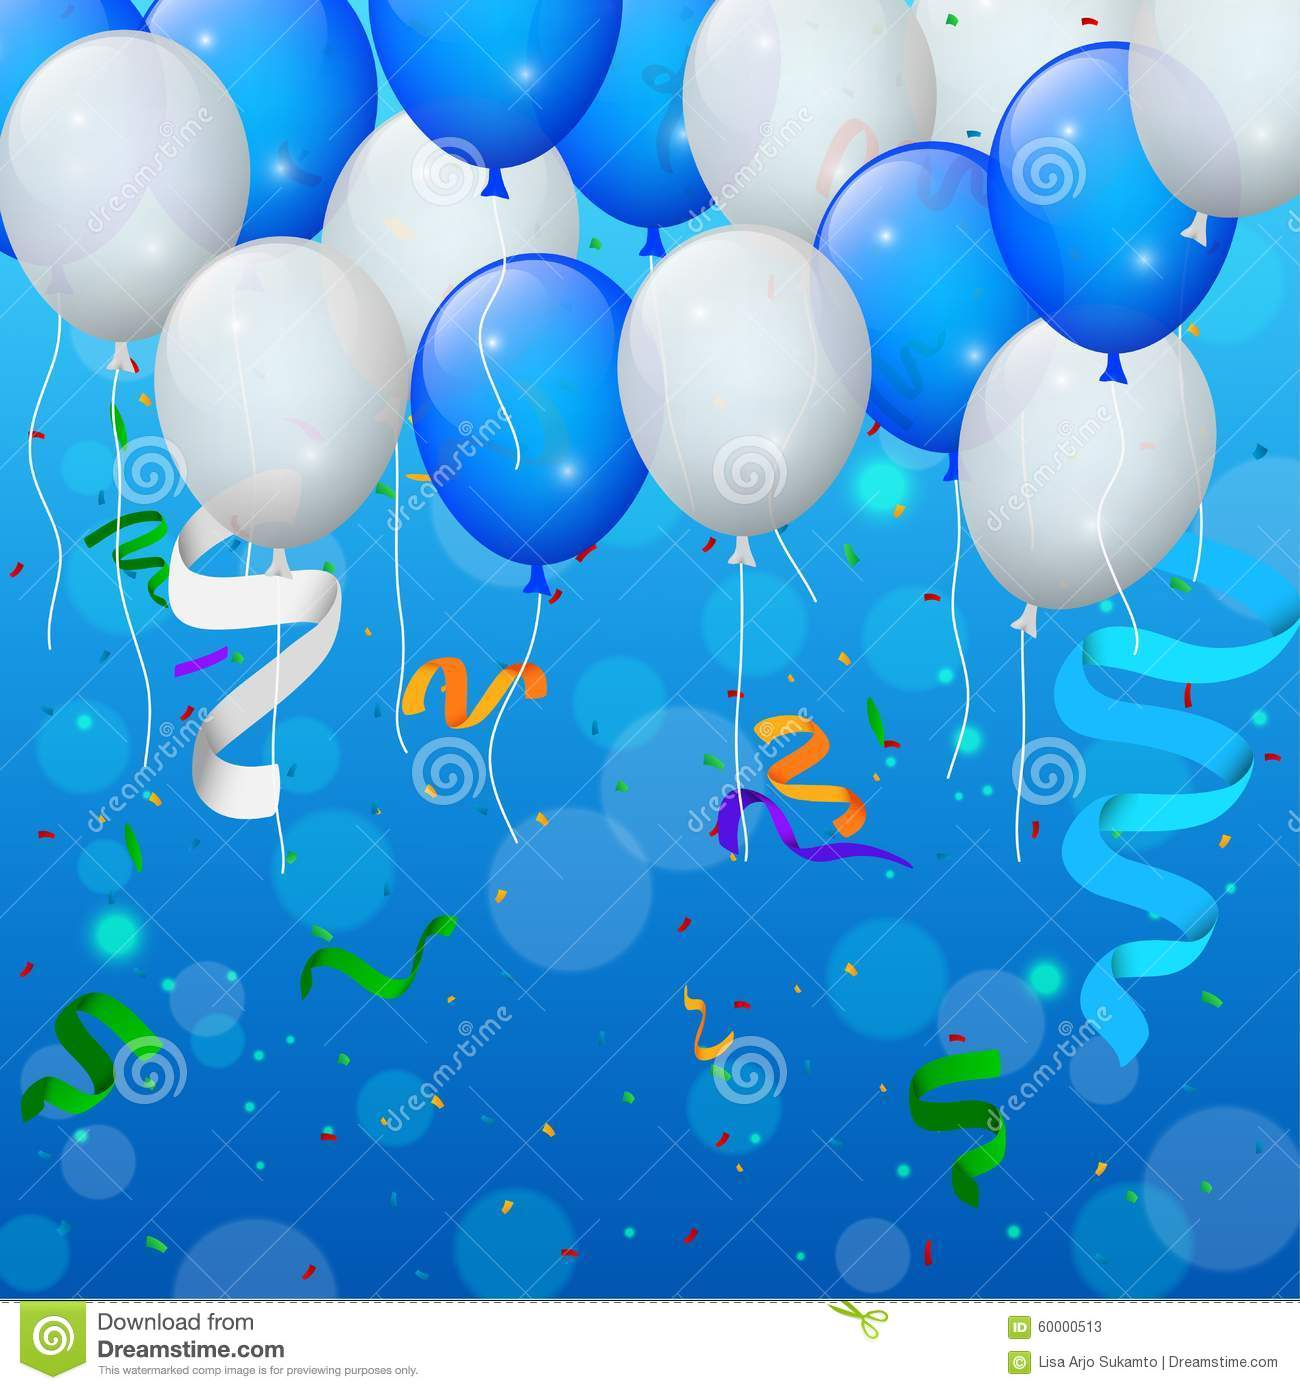 background design for birthday tarpaulin ; happy-birthday-party-balloons-ribbons-background-vector-illustration-60000513